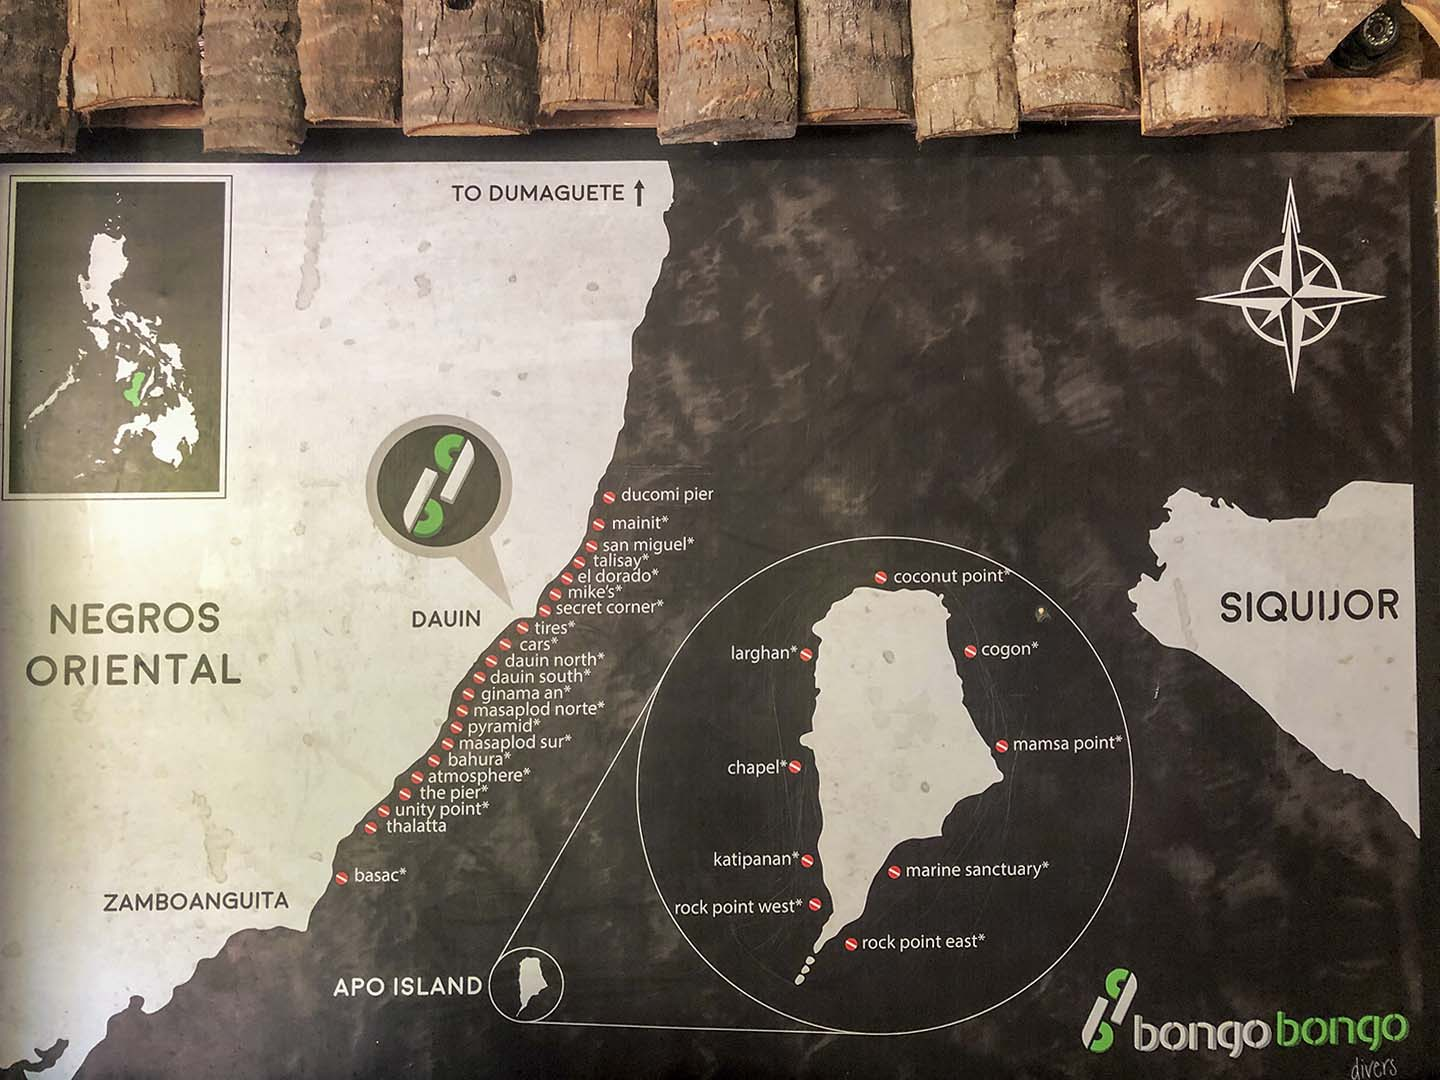 A map of the dive sites in Dauin, Negros Oriental